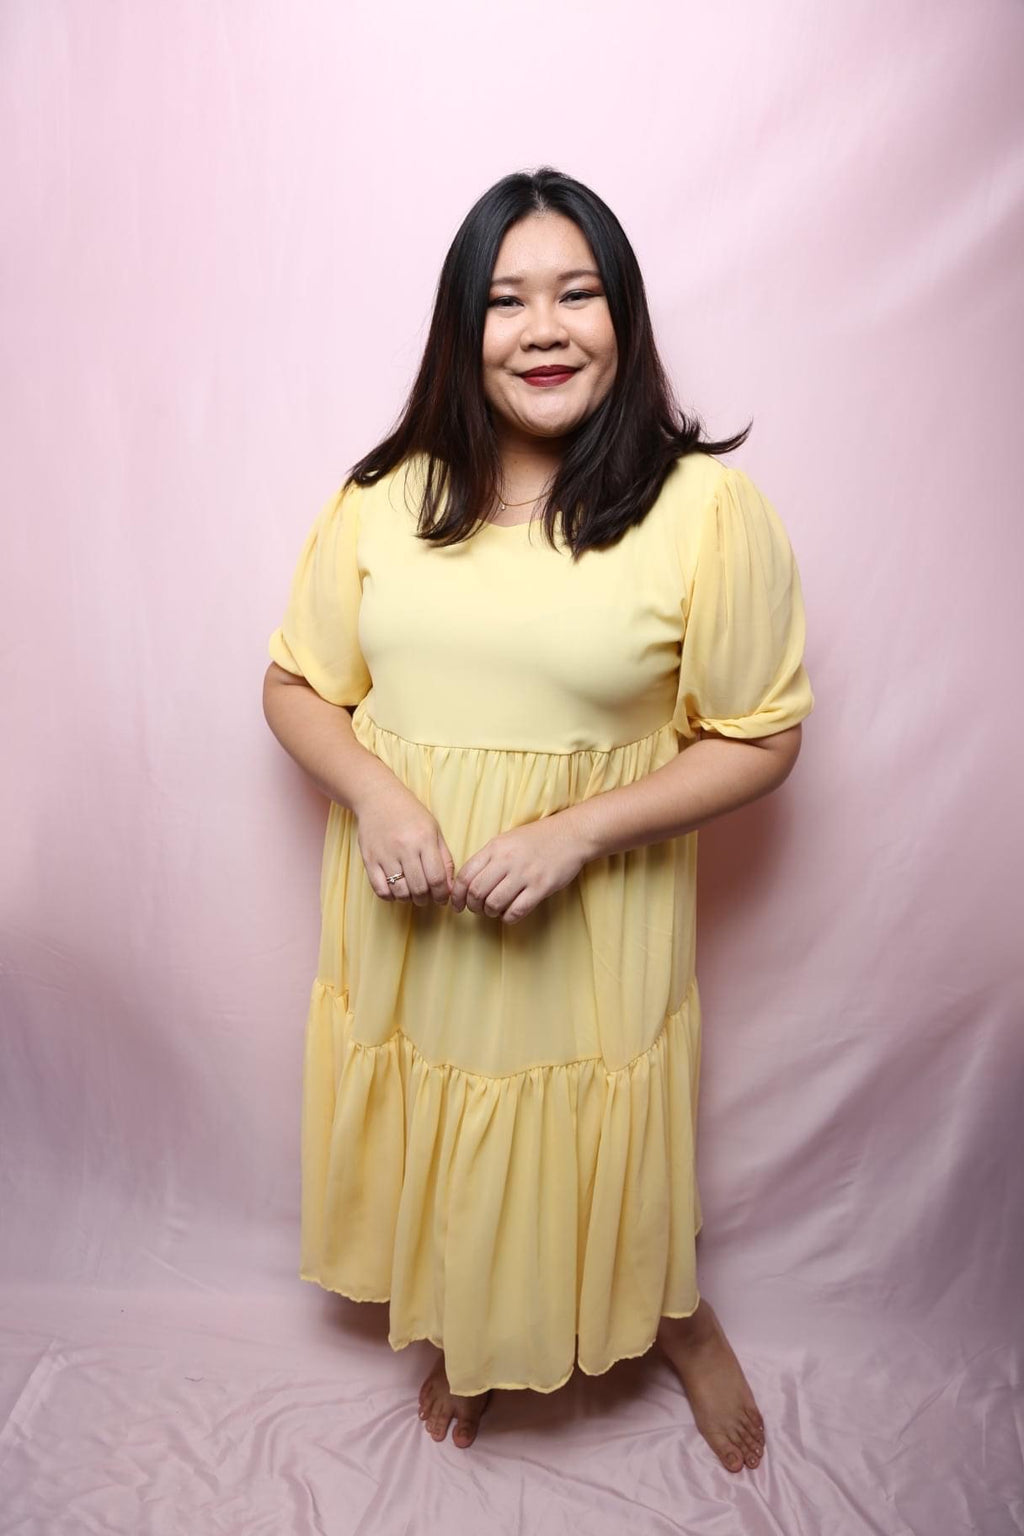 Ello Chiffon Dress (Plus Size Dress)